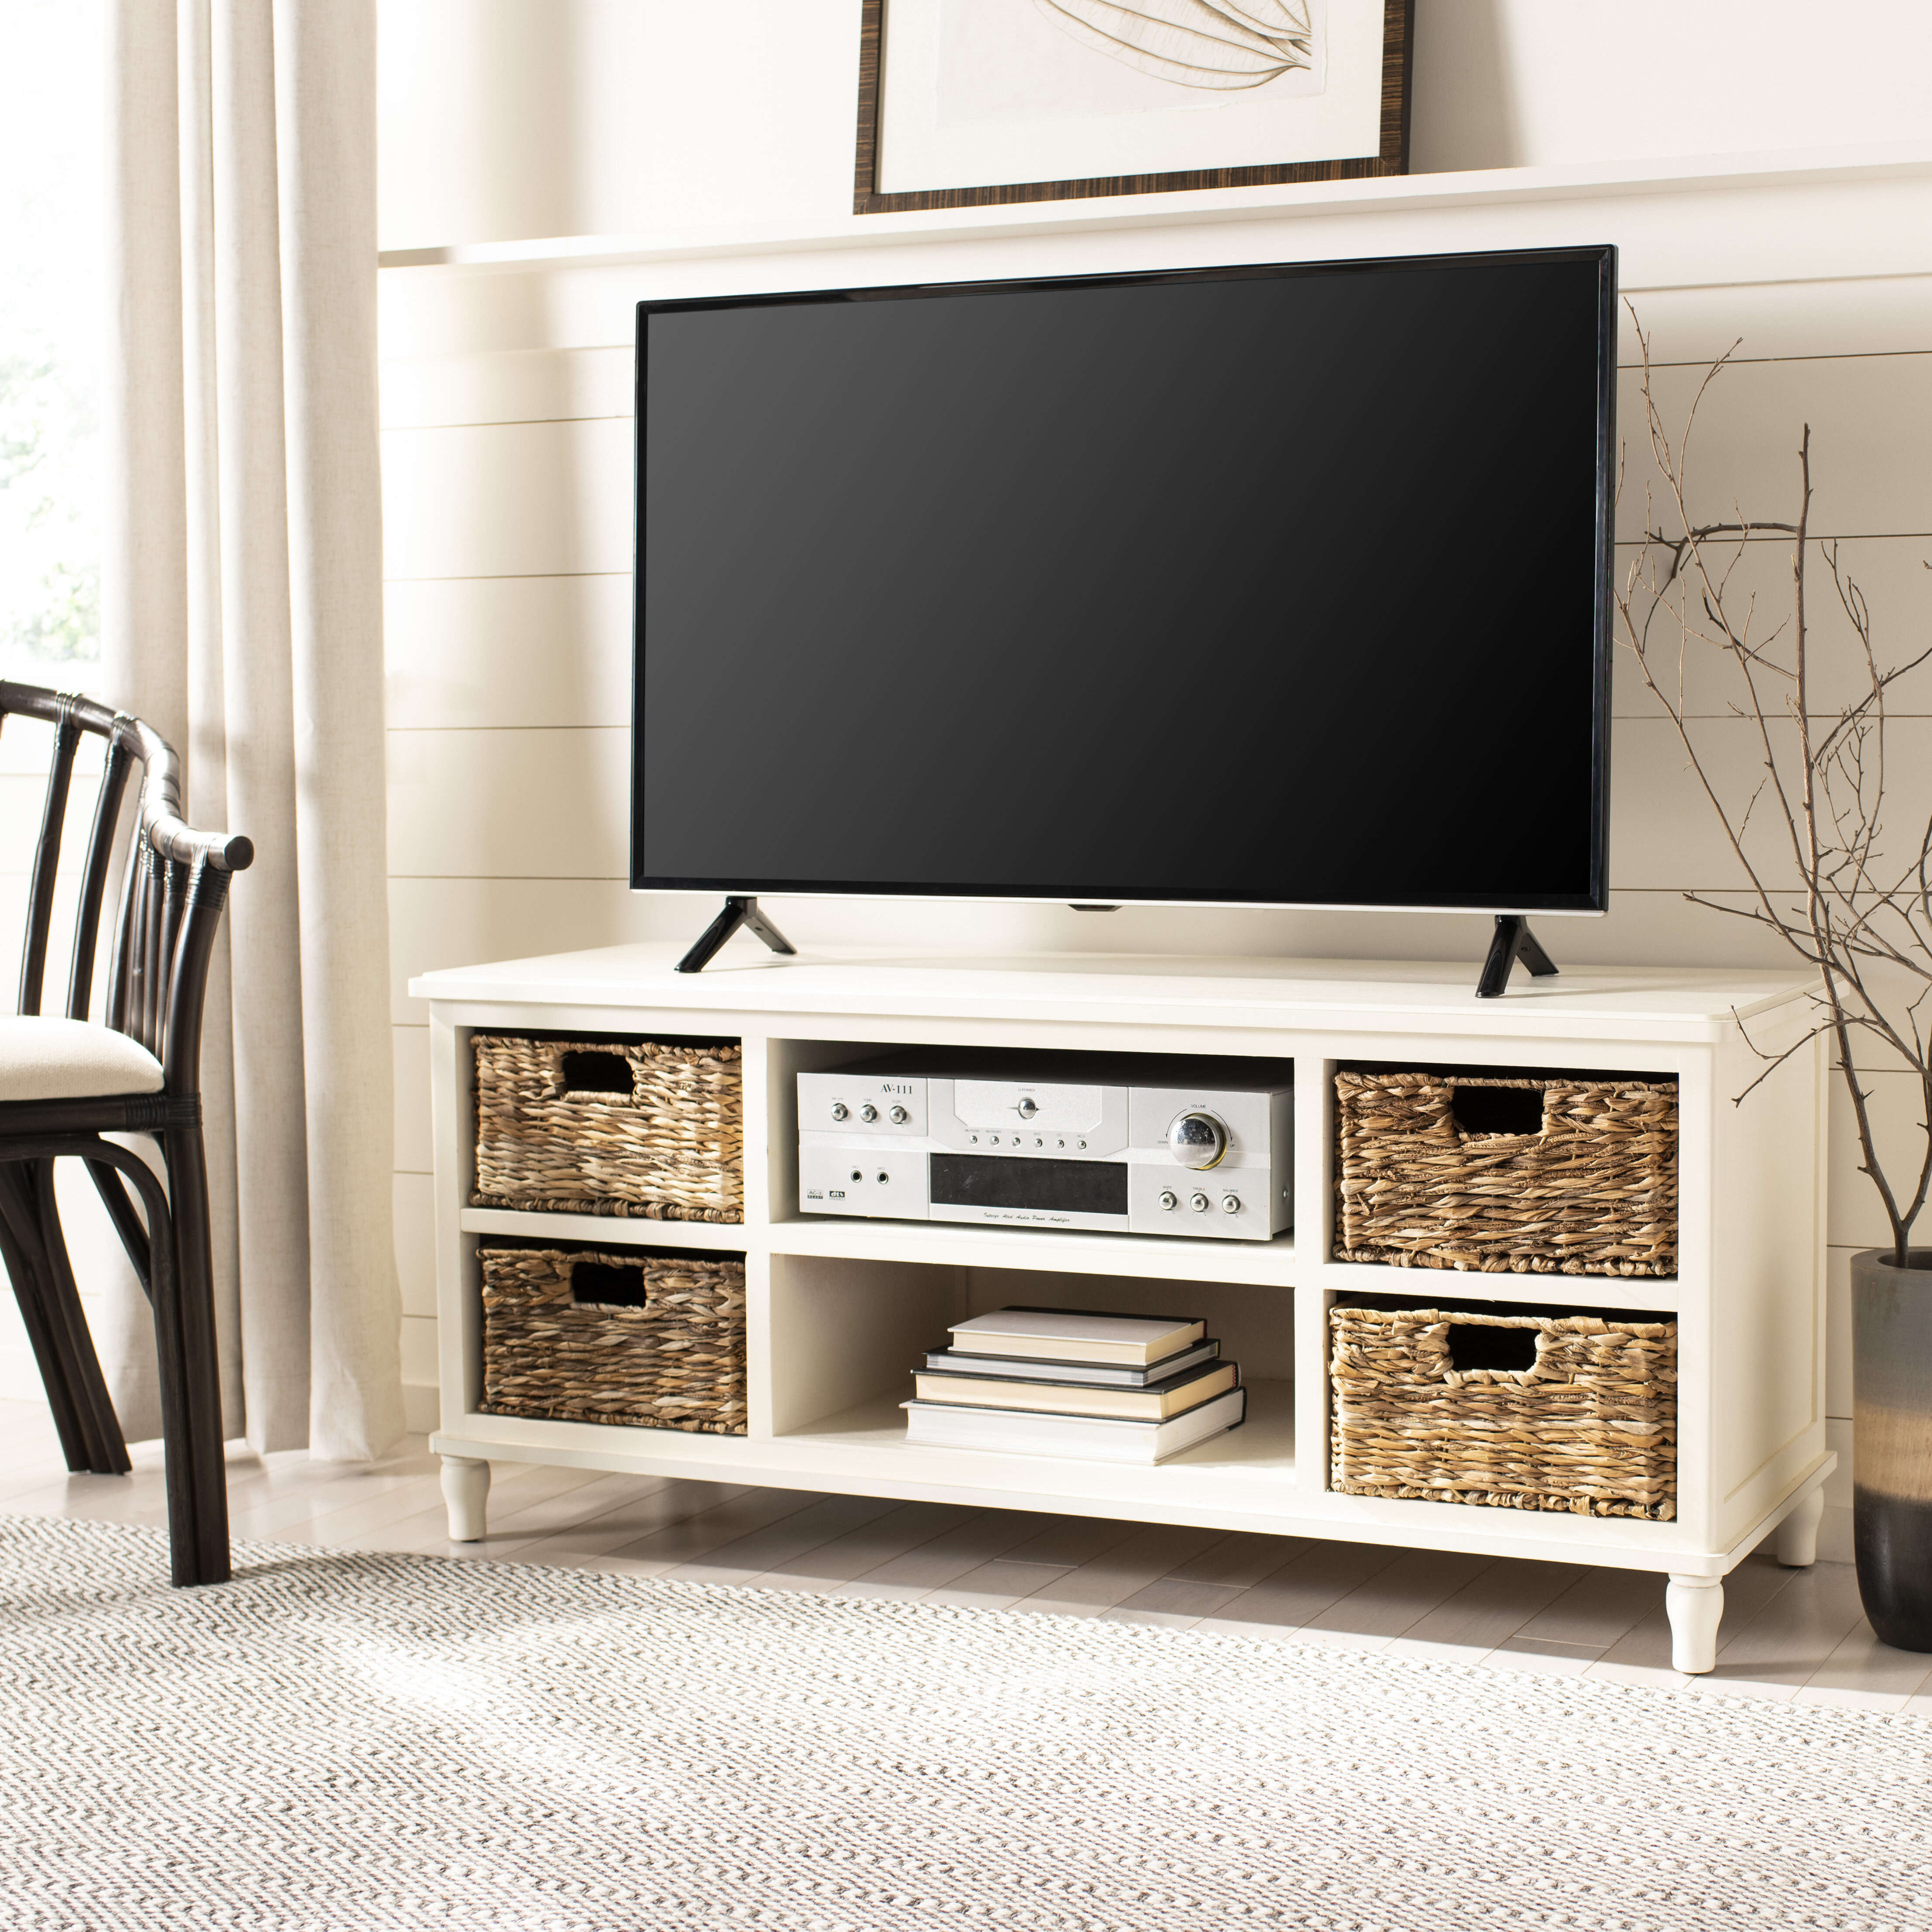 Enjoyable Chaim Tv Stand For Tvs Up To 43 Download Free Architecture Designs Scobabritishbridgeorg